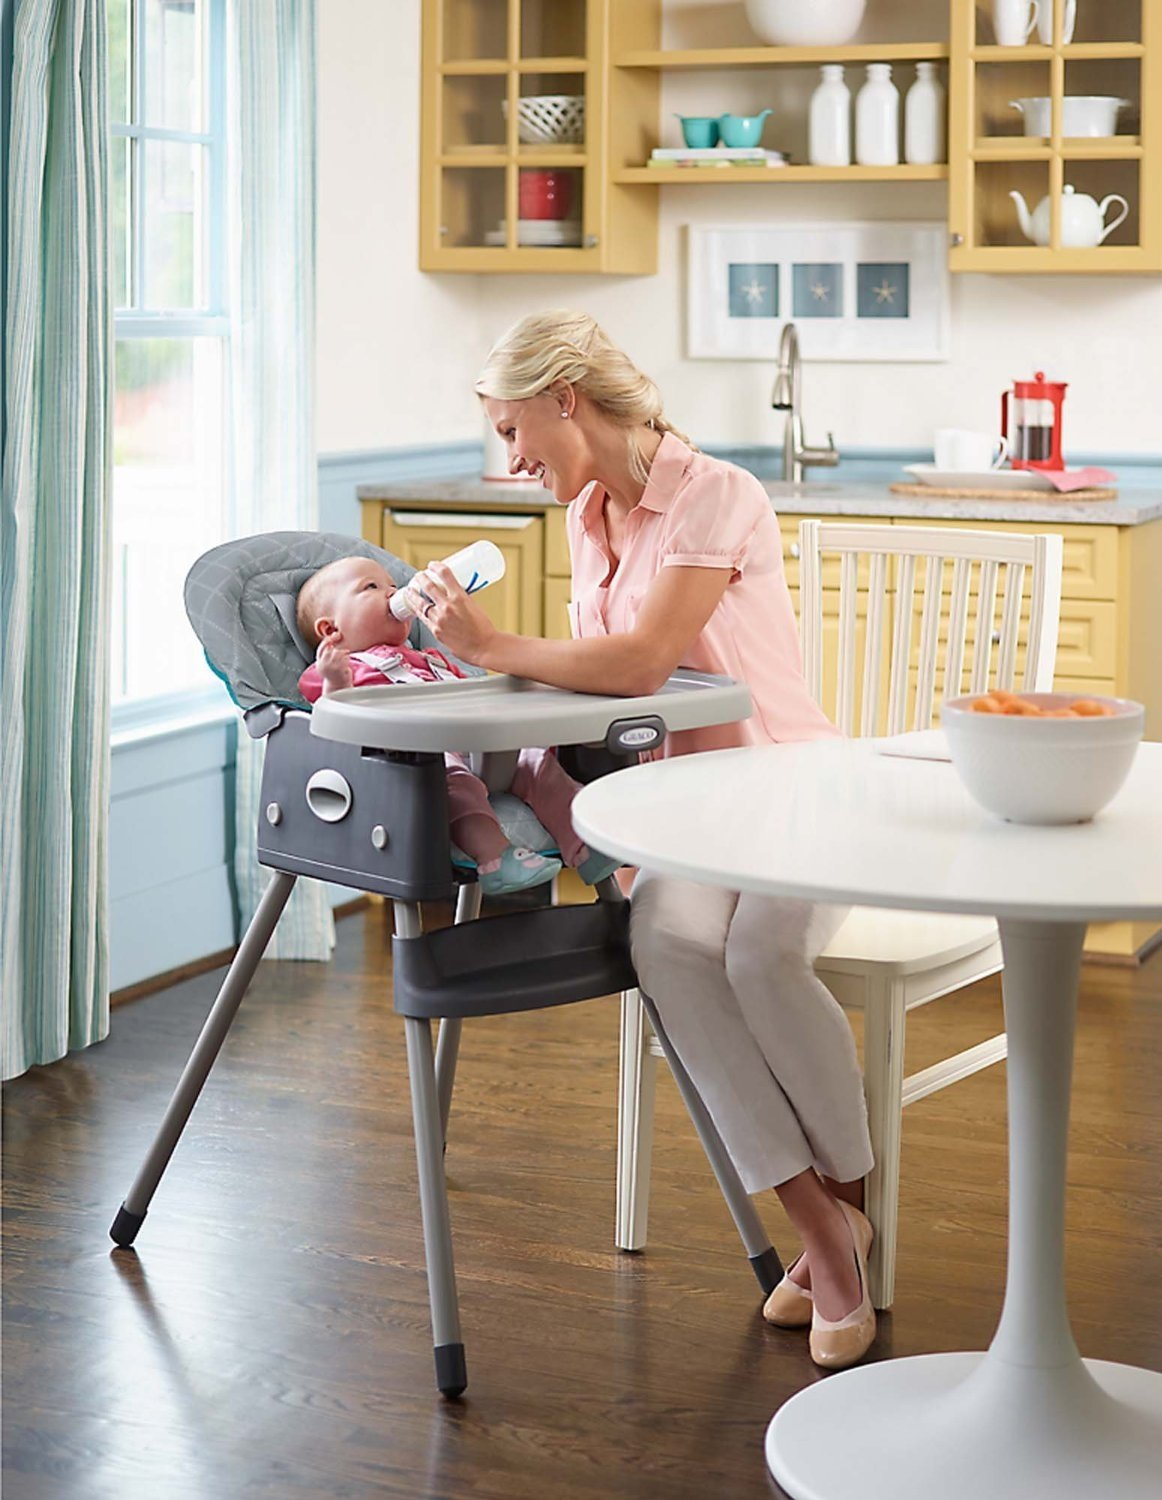 Amazon.com : Graco Finch Collection (Travel System, Highchair, On The Go  Playard U0026 Swing) : Baby